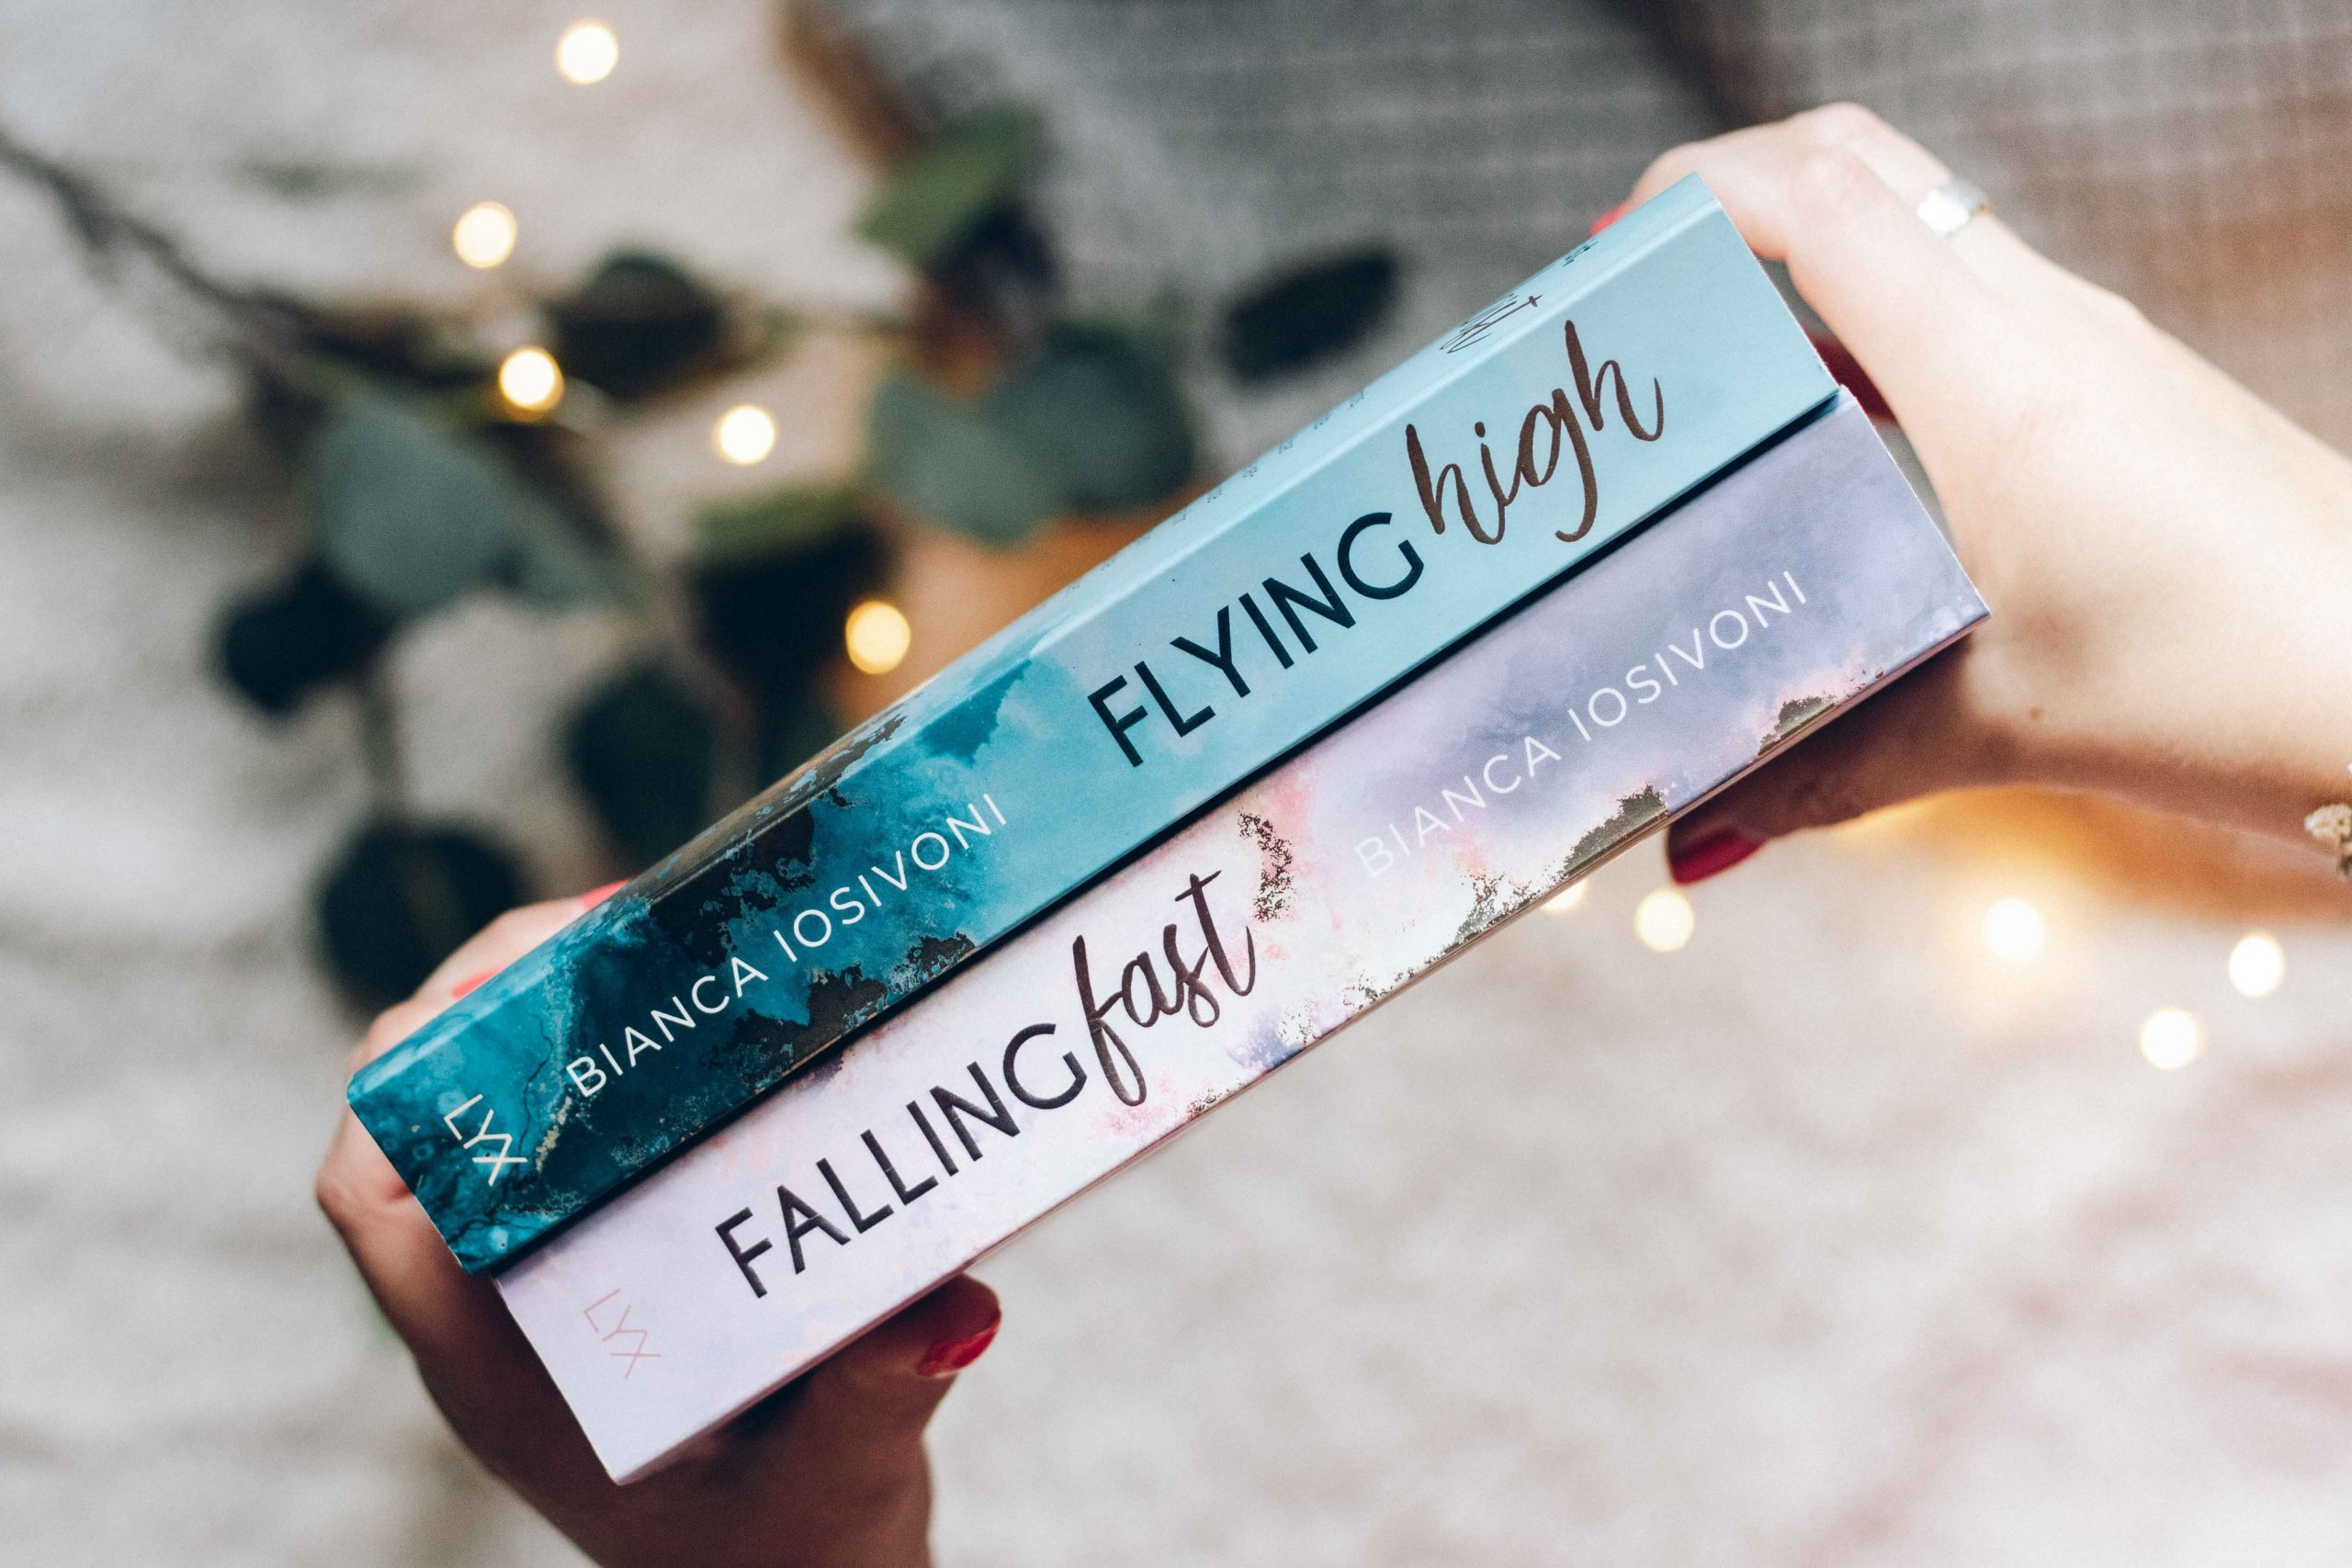 Flying High – Hailee & Chase | Bianca Iosivoni